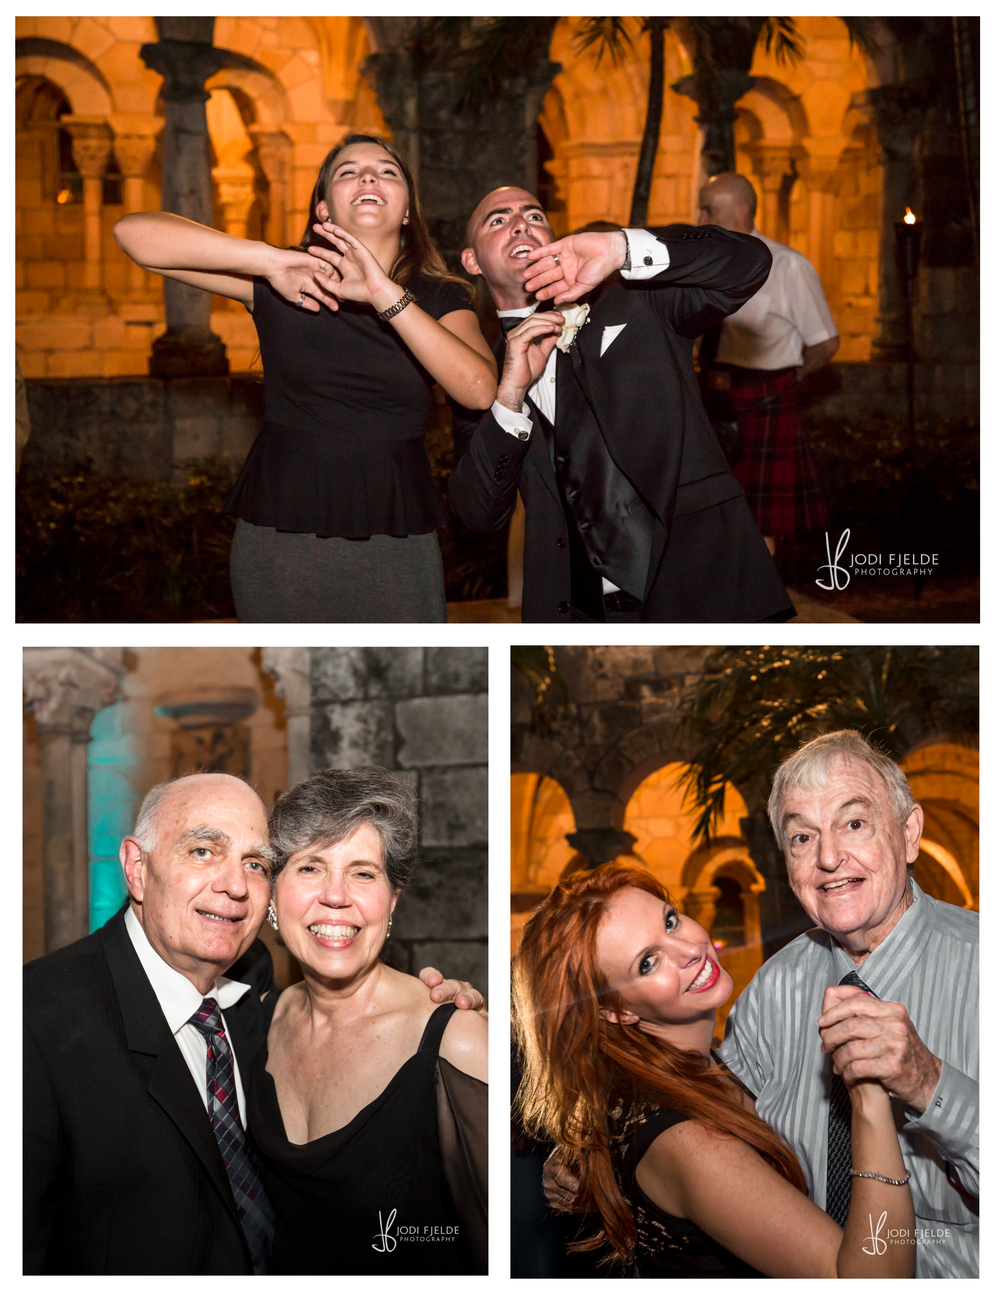 Ancient_Spanish_Monastery_Miami_Florida_wedding_Gio_Iggy_Jodi_Fjelde_Photography_23.jpg